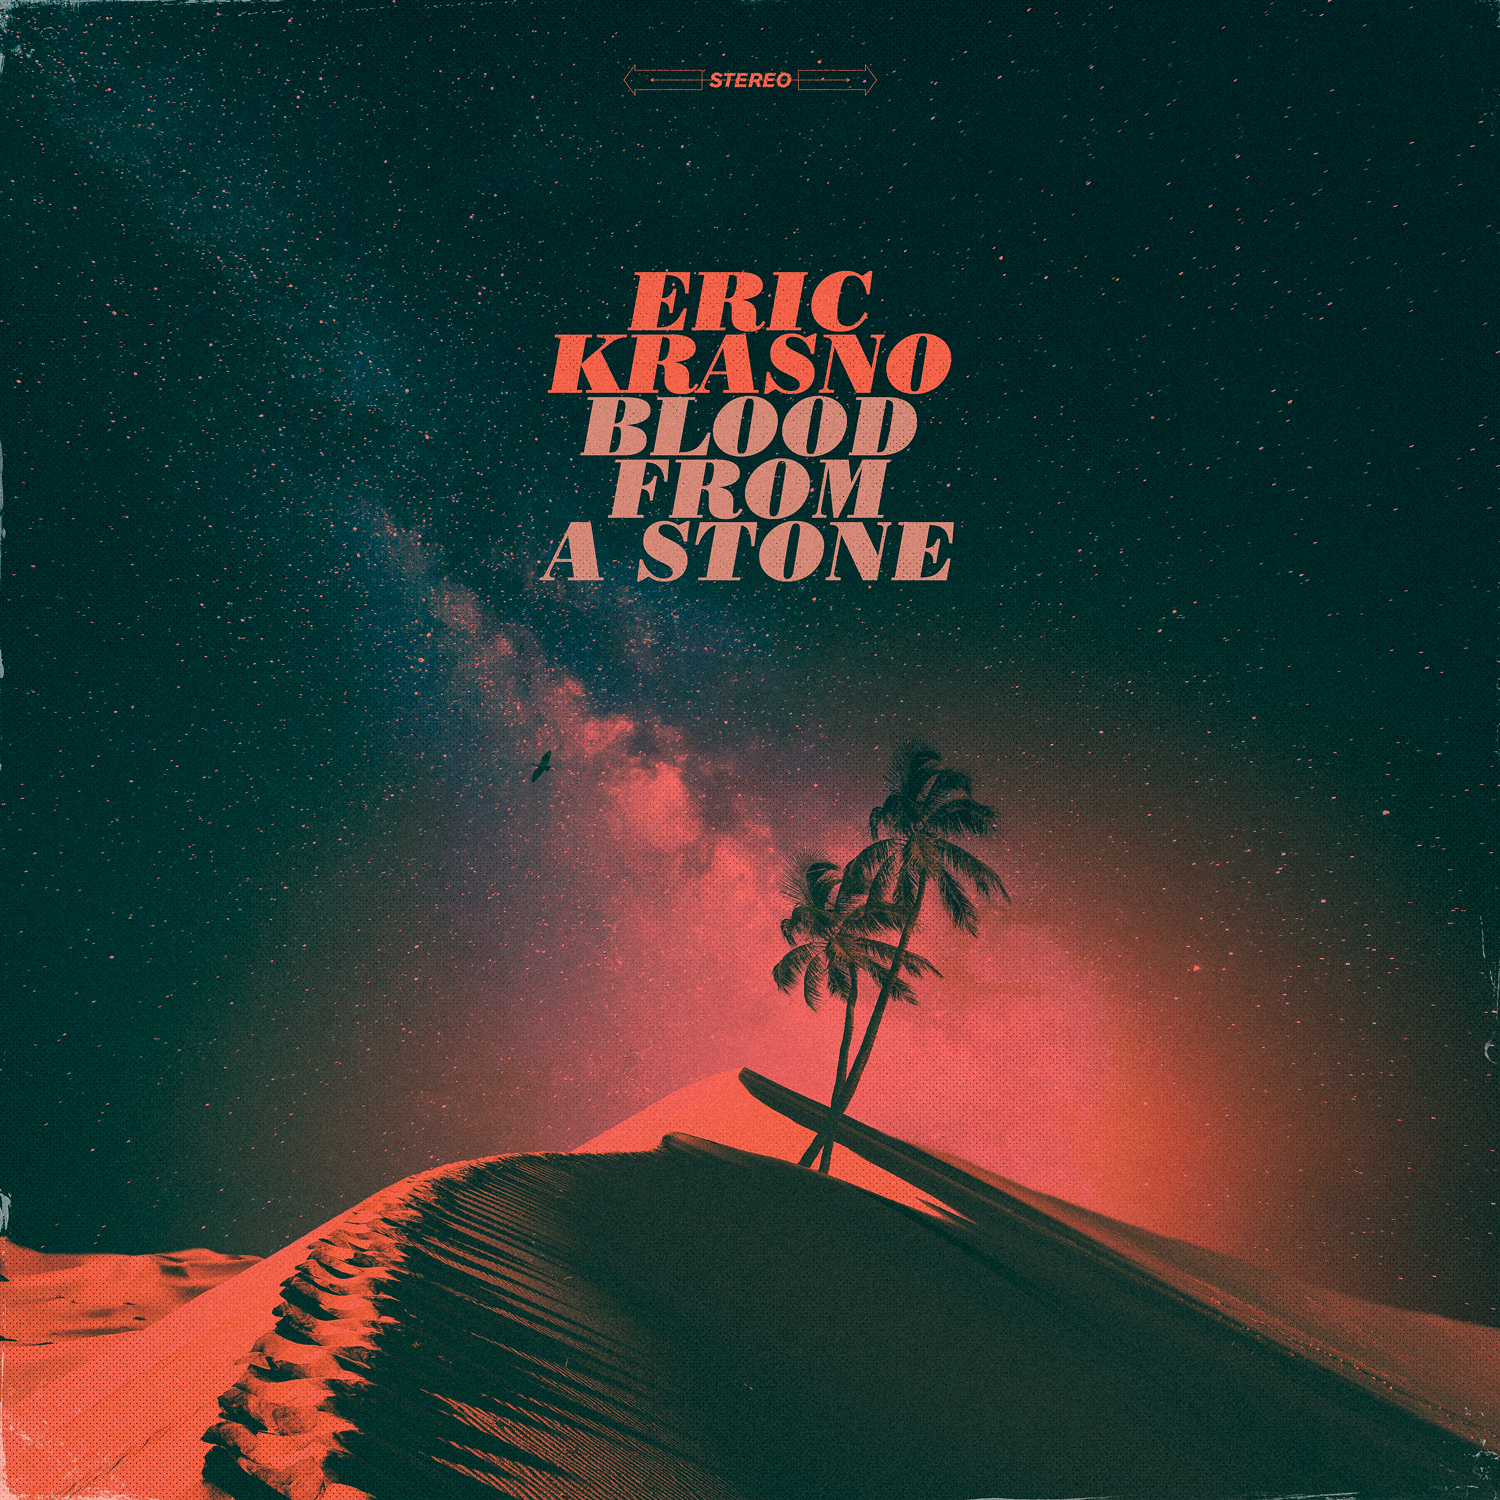 Eric_Krasno-Blood_From_A_Stone-1500x1500.jpg